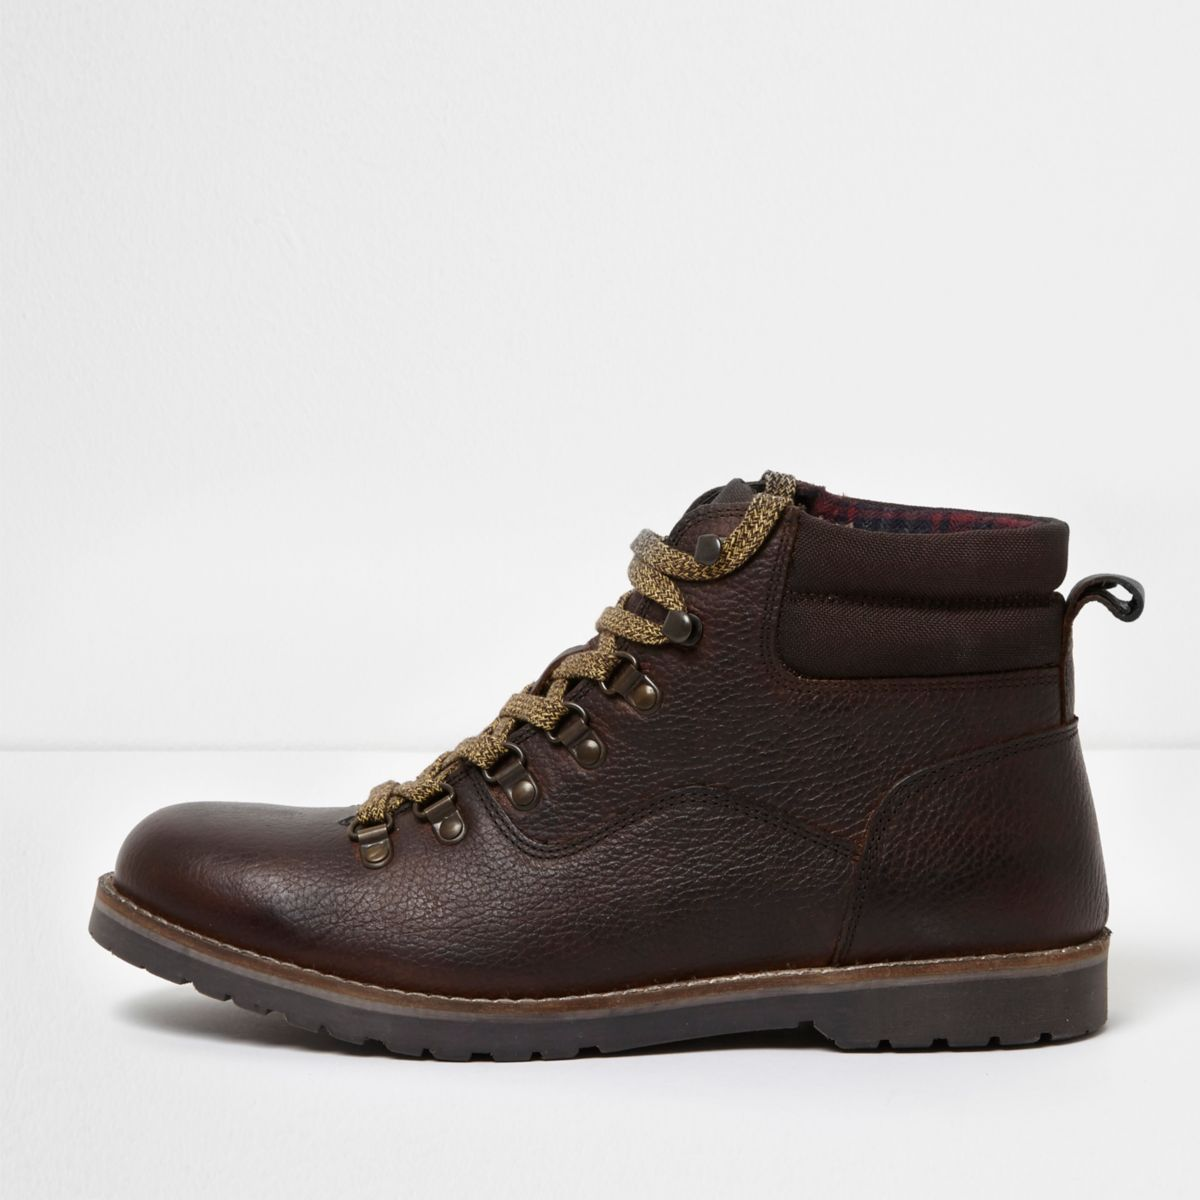 Brown Leather Lace-up Work Boots - Boots - Shoes U0026 Boots - Men